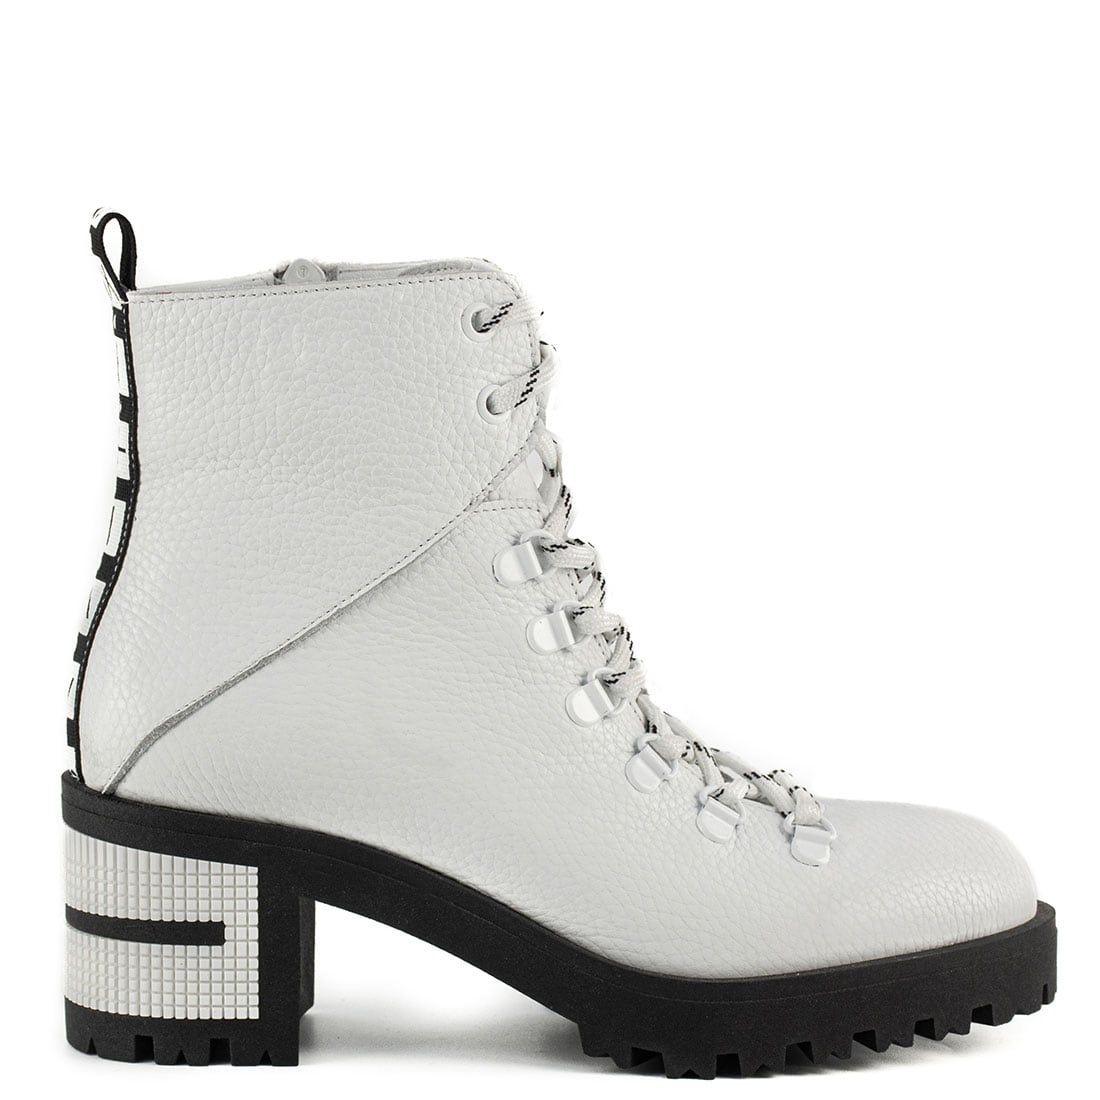 White leather army boot WST2058-L13